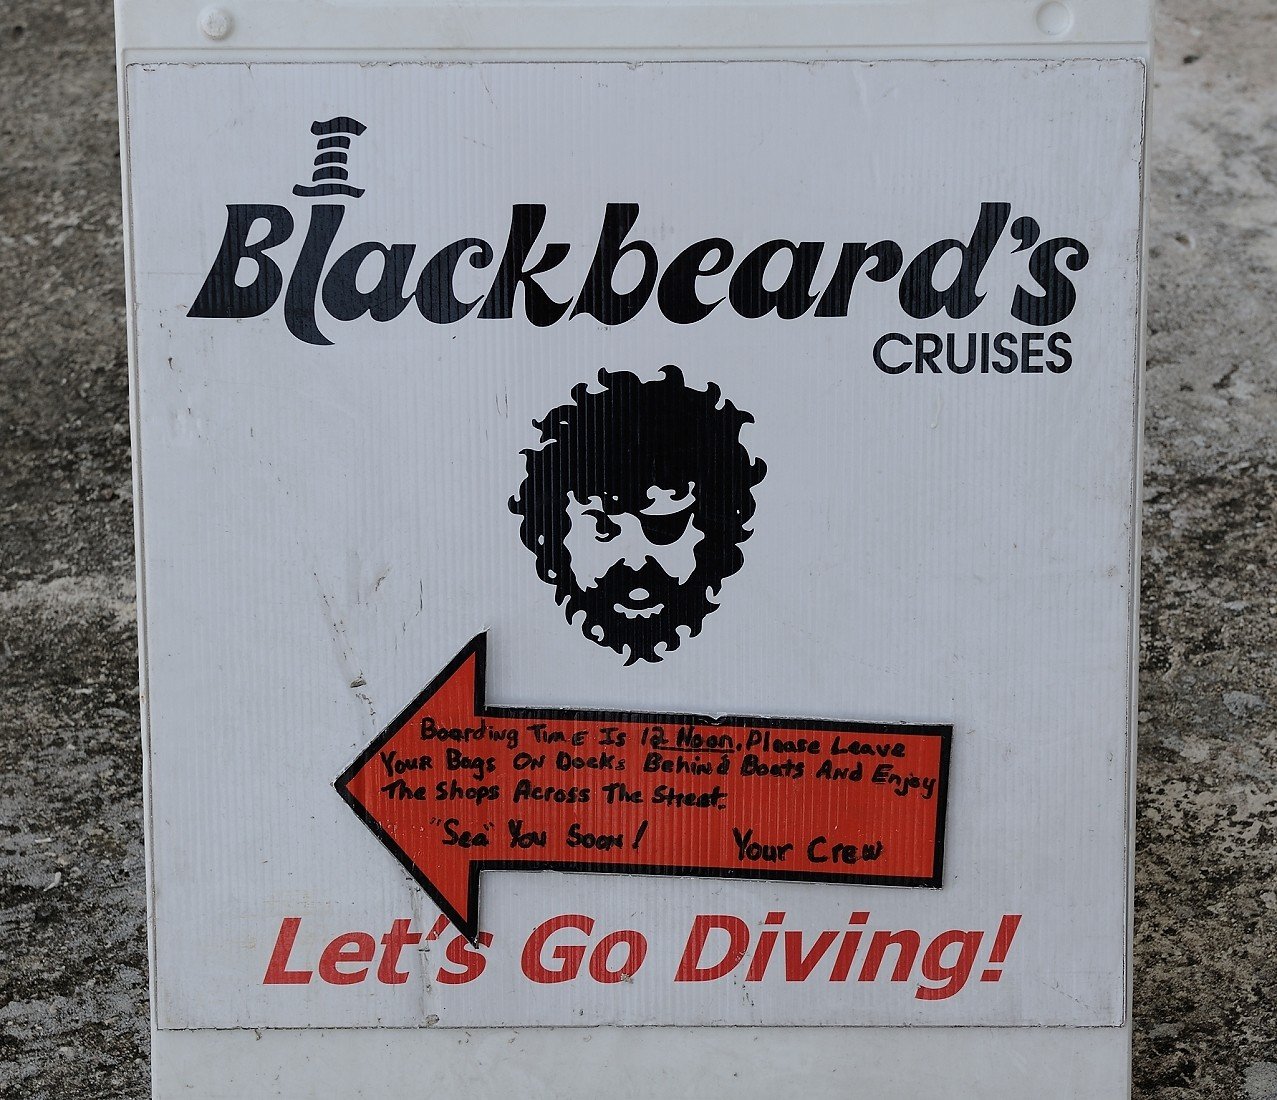 Blackbeard's Cruises